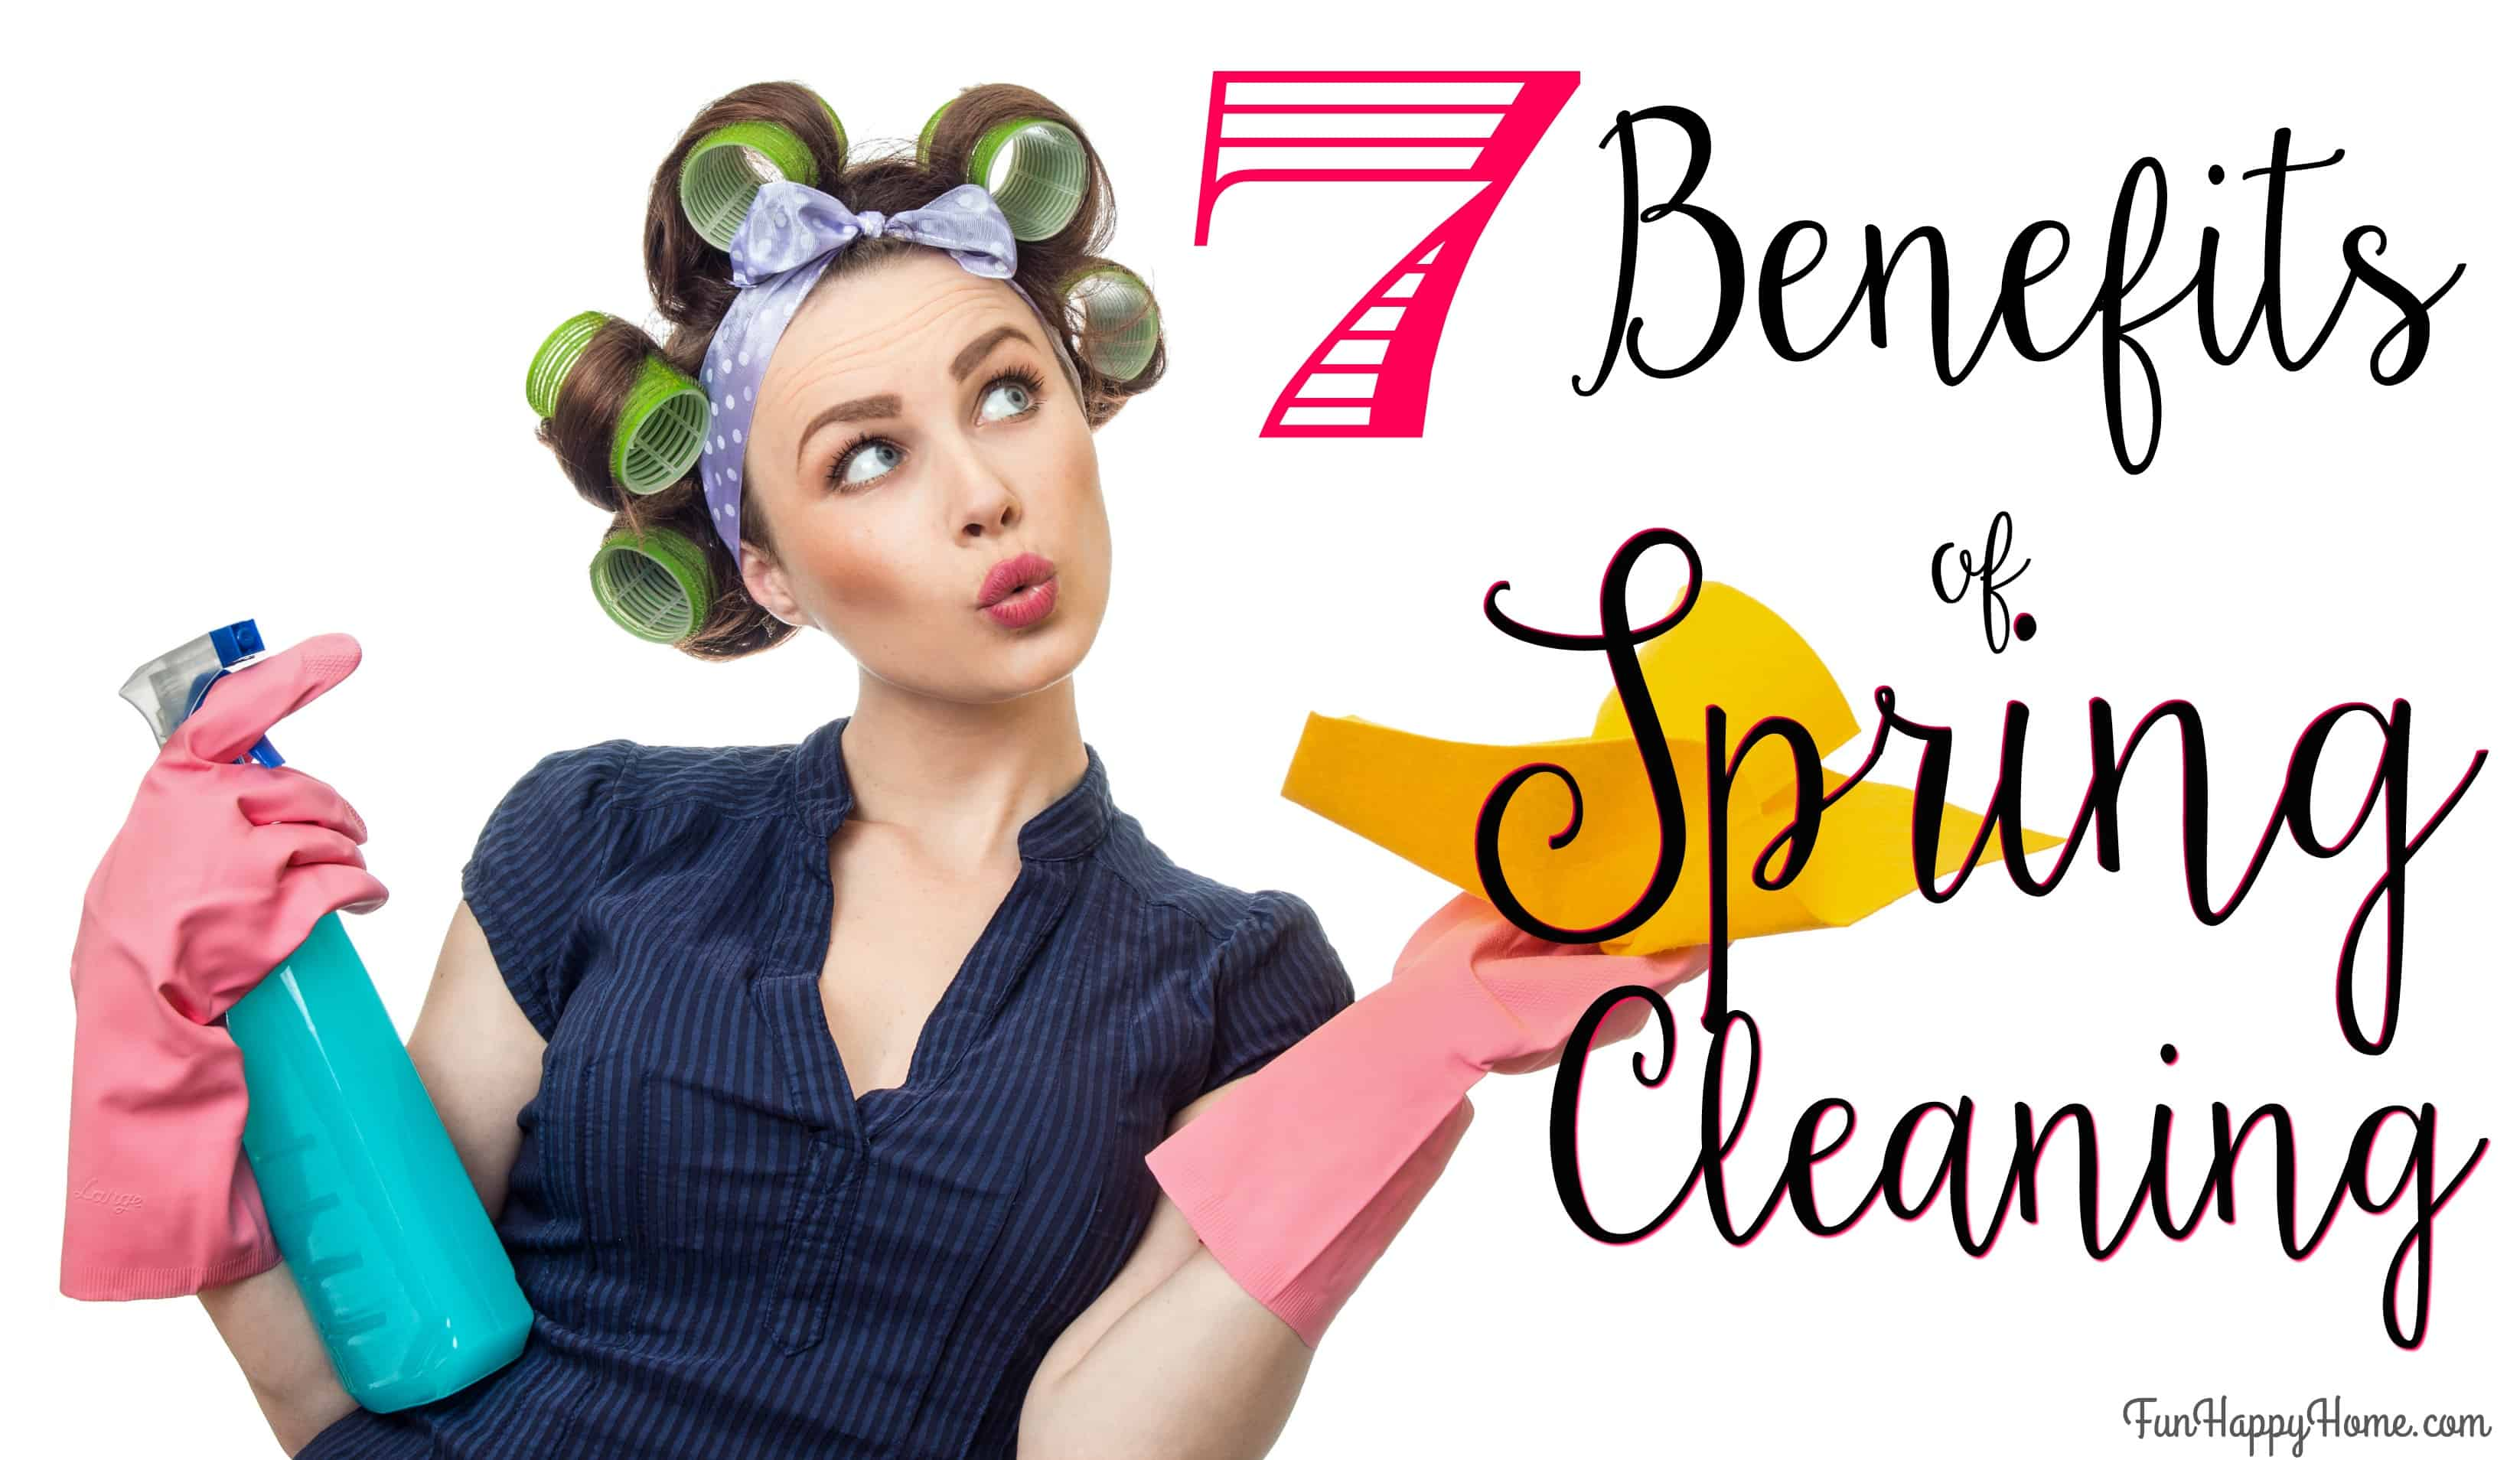 Prepare Your Home For Spring Cleaning - Carpet Cleaning ...